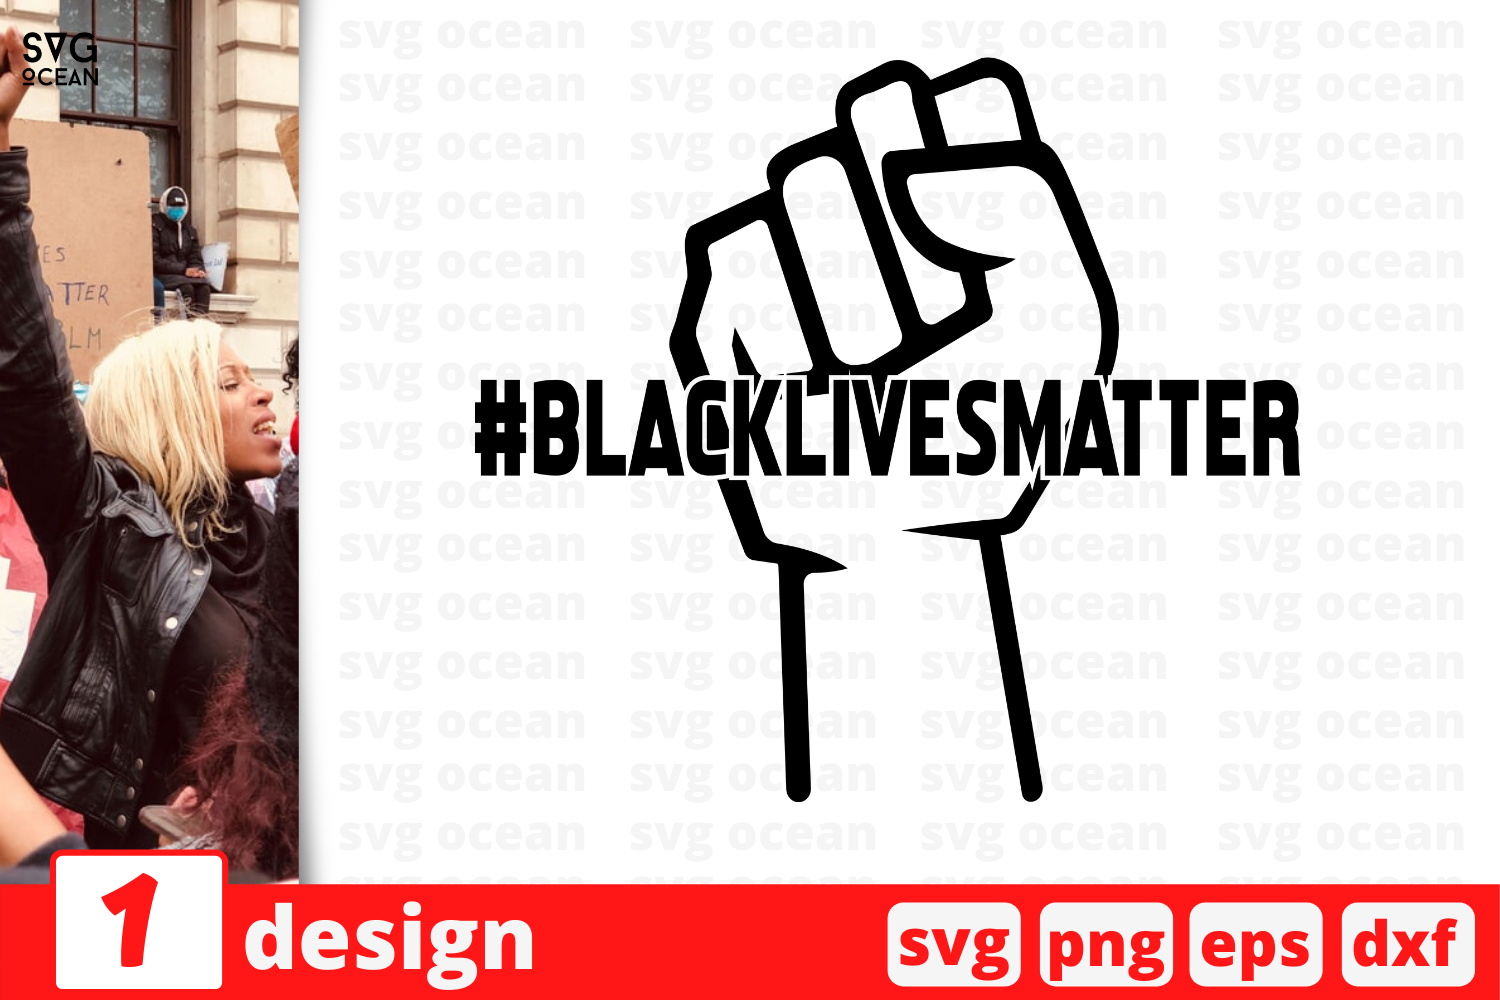 Download Free Blacklivesmatter Graphic By Svgocean Creative Fabrica for Cricut Explore, Silhouette and other cutting machines.